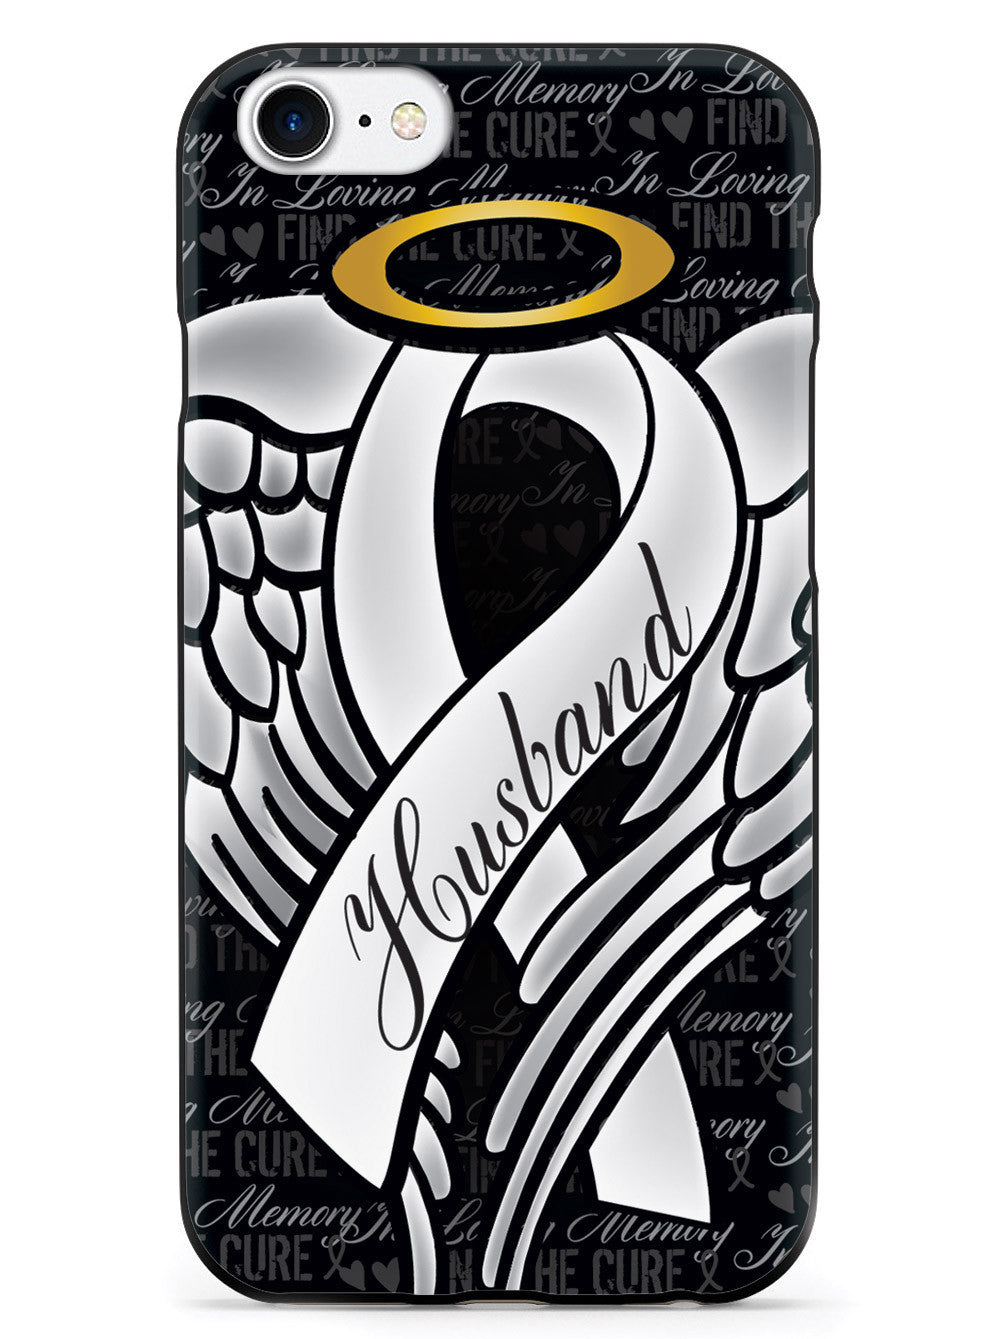 In Loving Memory of My Husband - White Ribbon Case